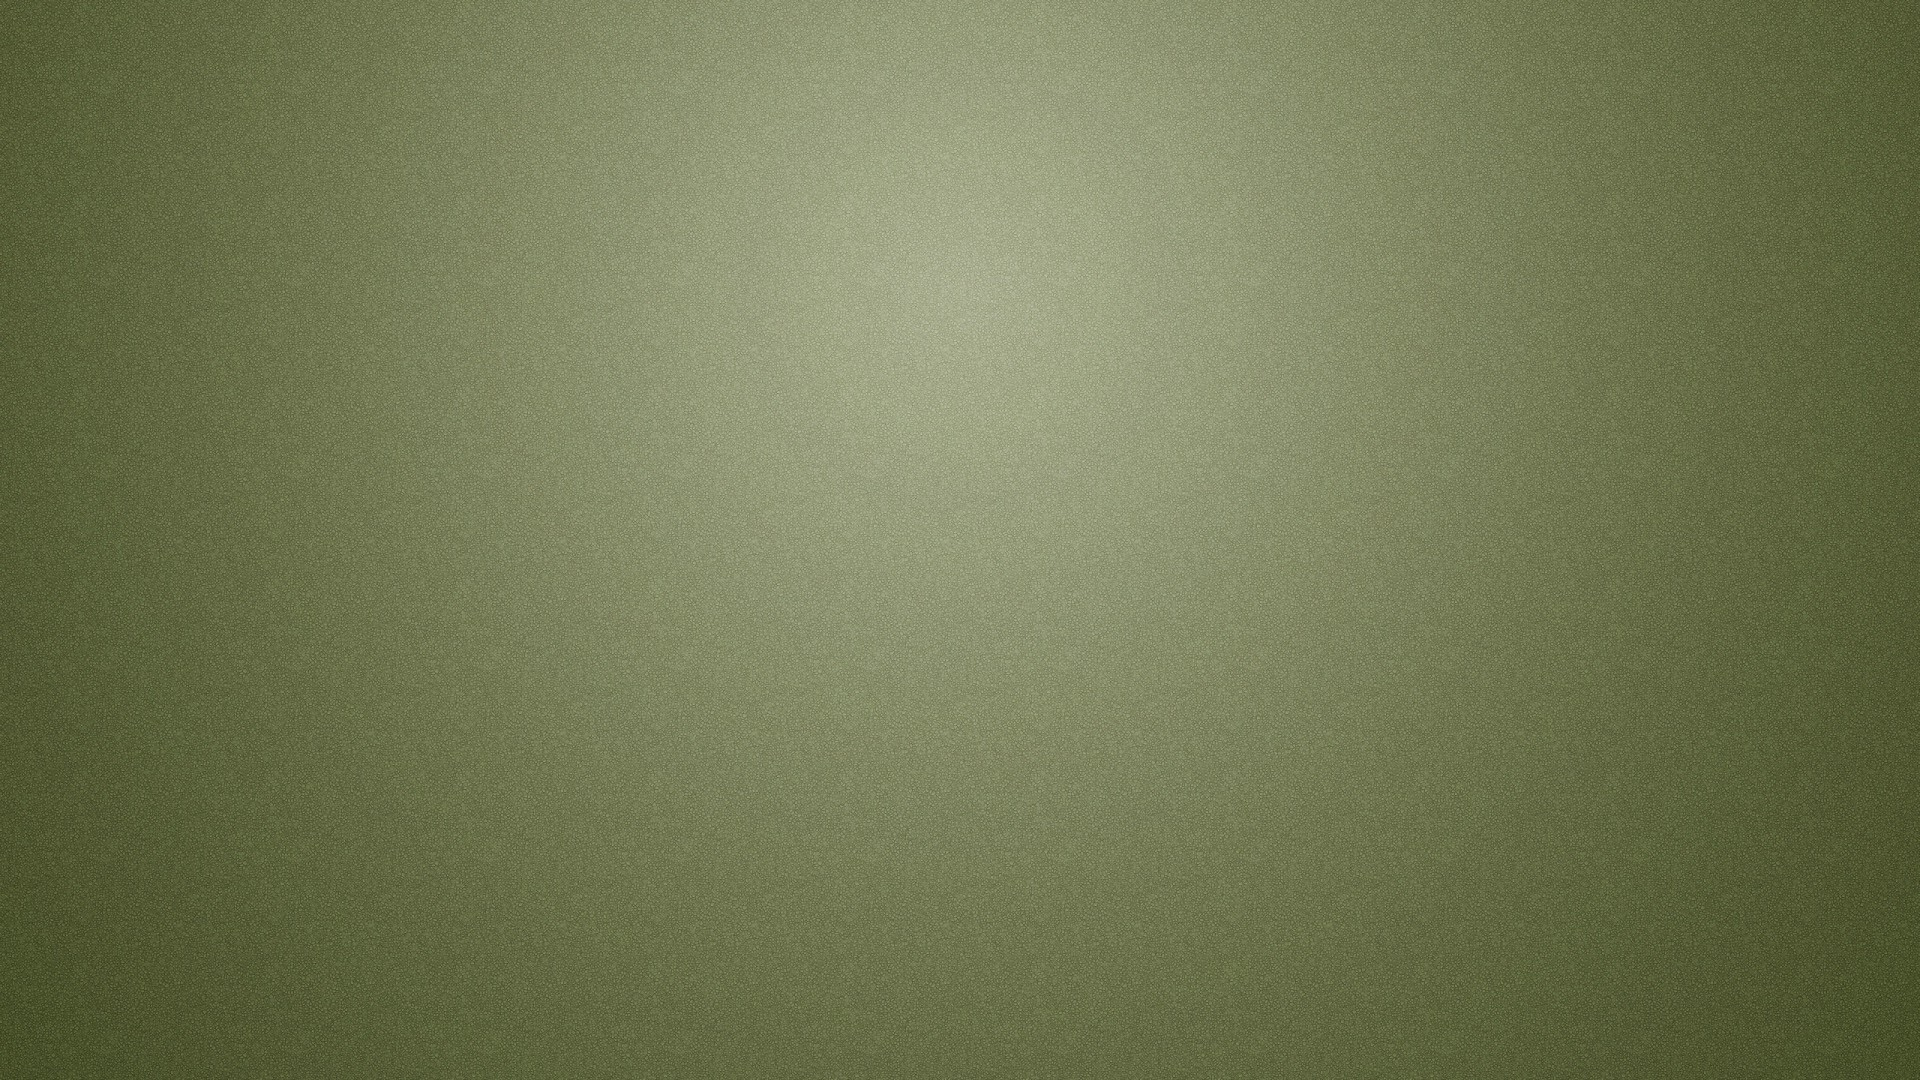 Wallpaper surface, solid, color